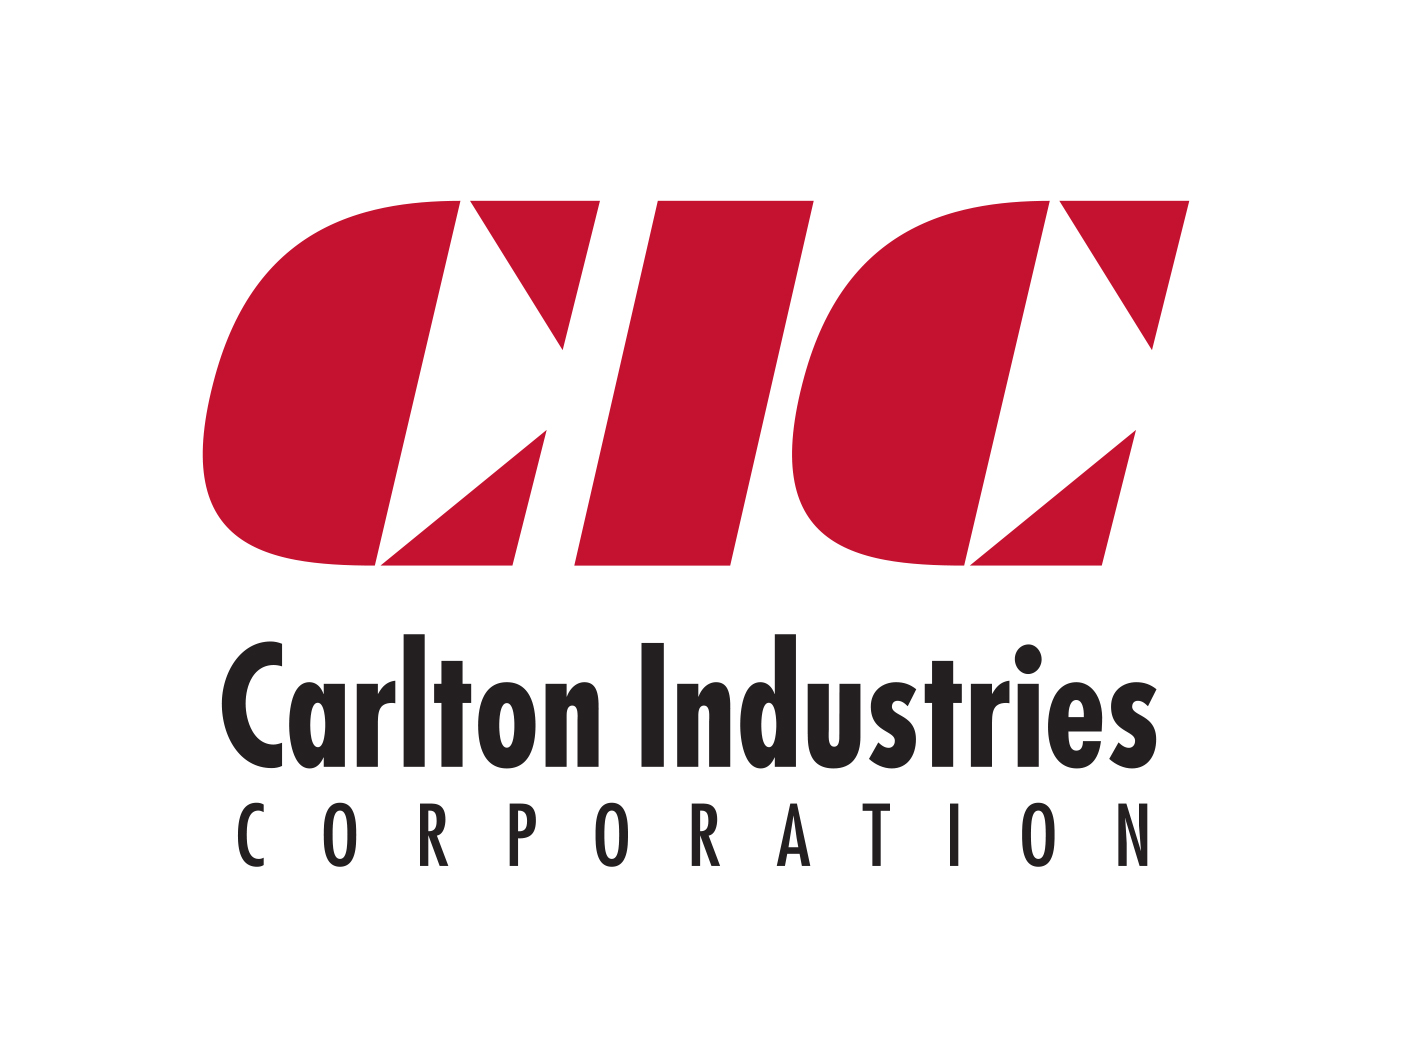 Carlton Industries Corporation Hamden Ct 06514 Electronic Circuit Board Wire Harness In Printed Boards Including Box Build